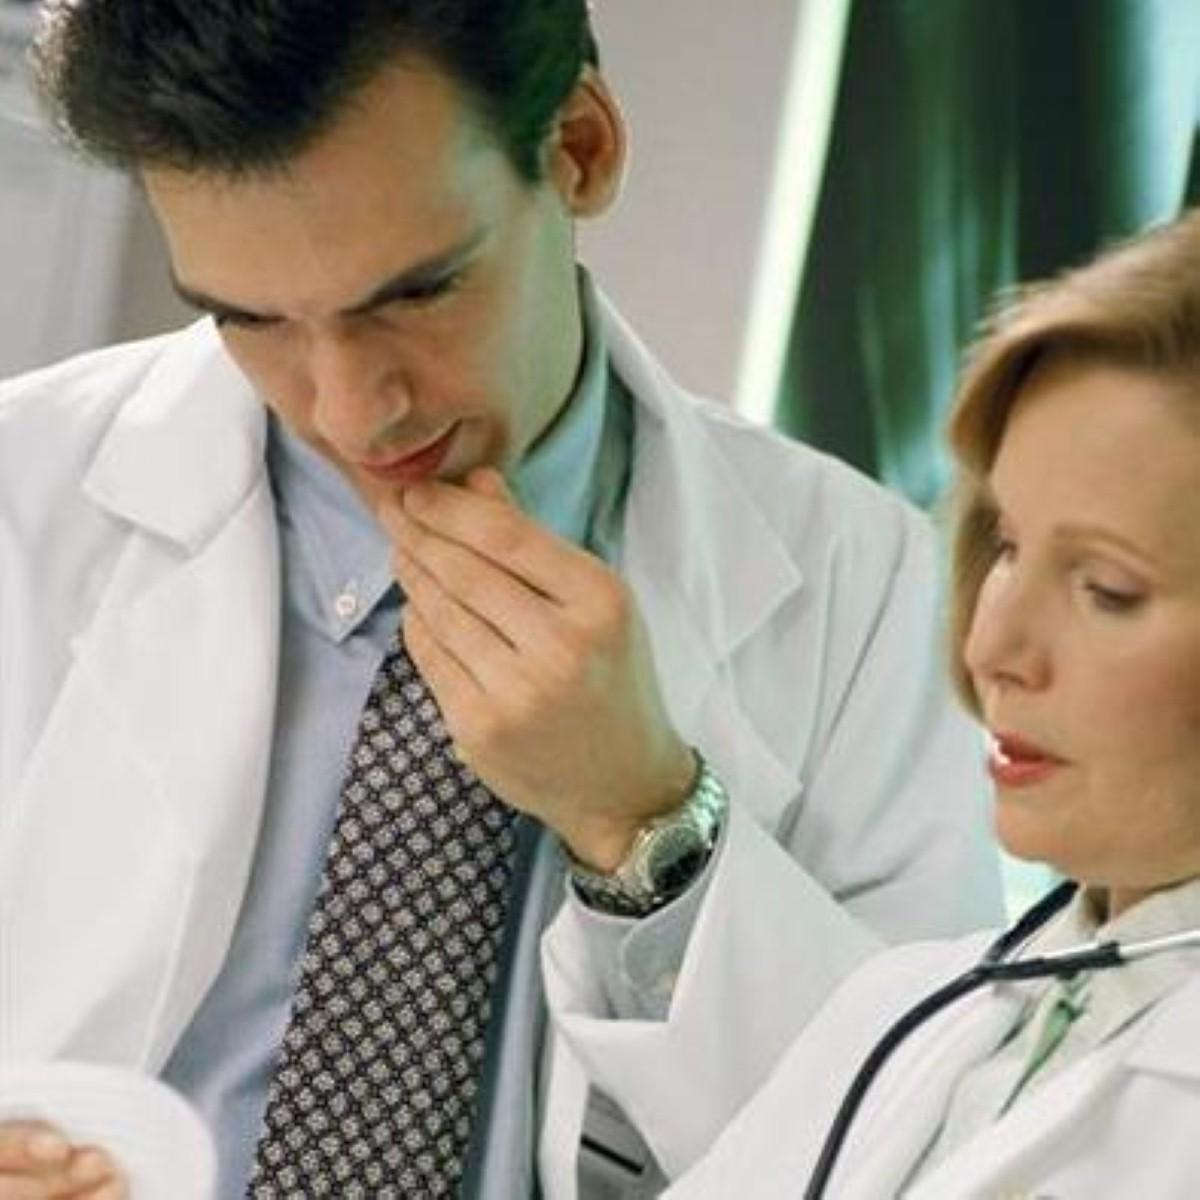 Brits concerned over memory urged to seek GP advice